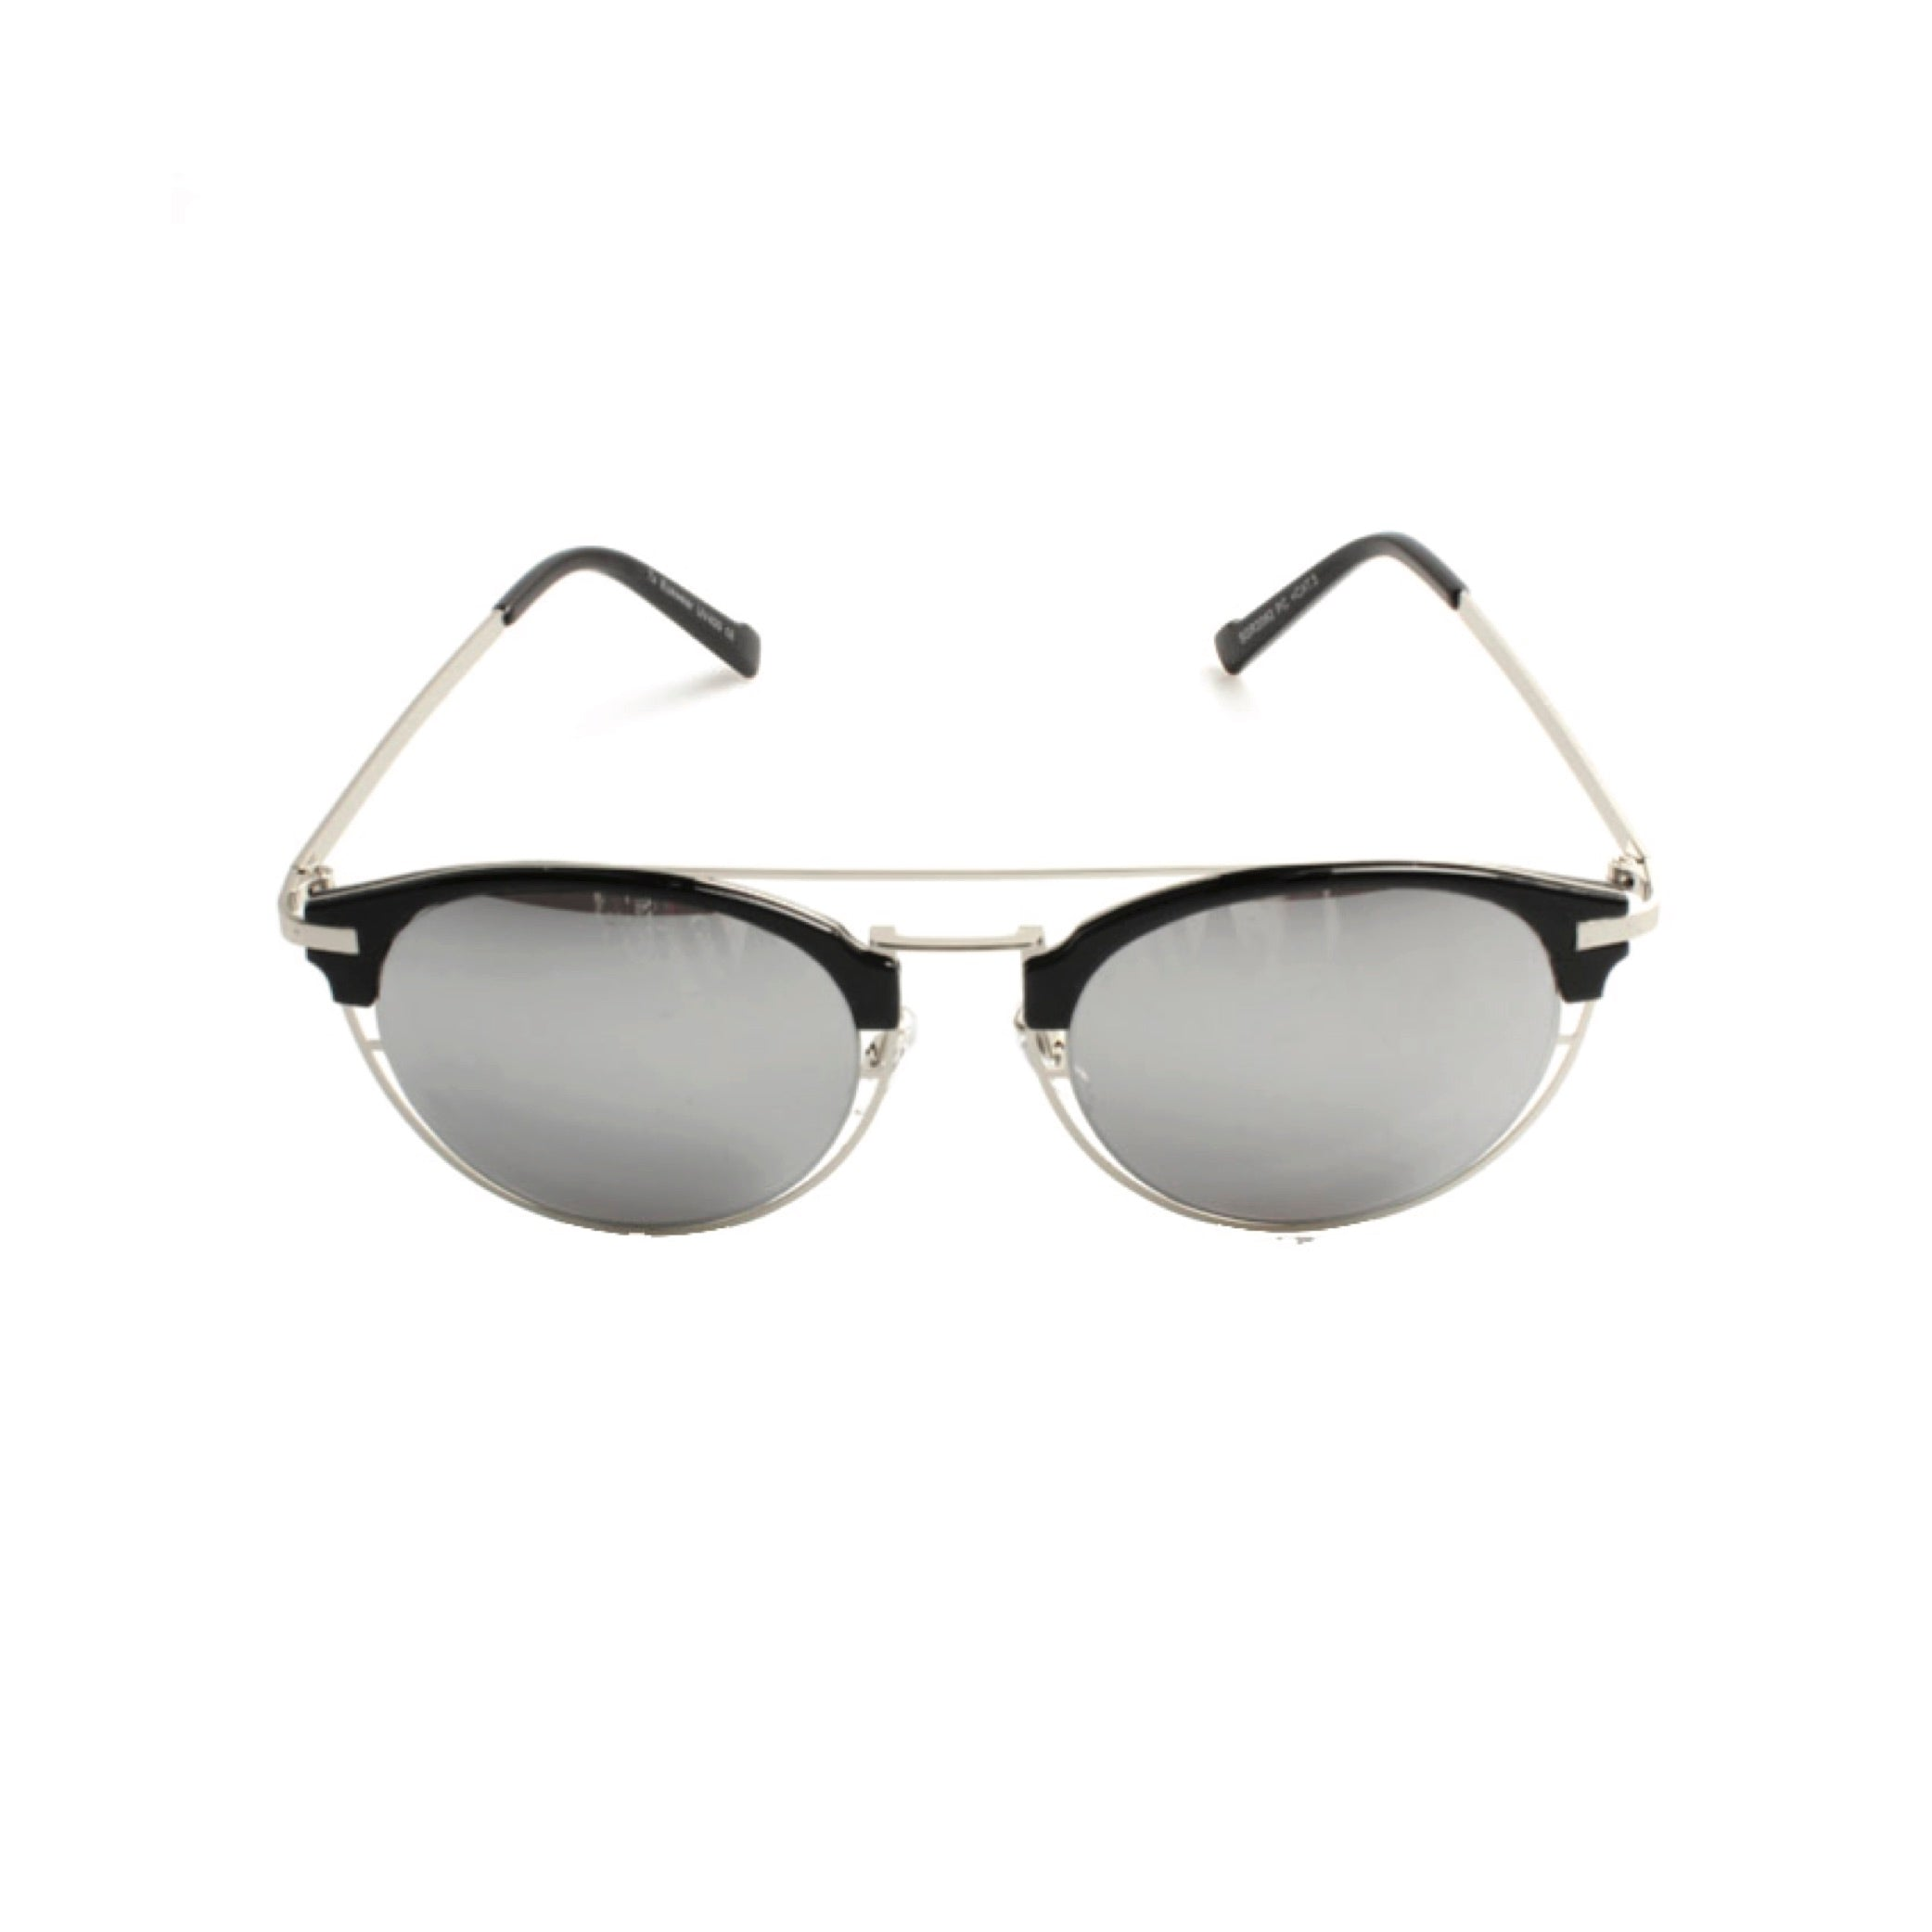 METAL CUT OUT FLAT TOP ROUND FRAME SUNGLASSES - svnx